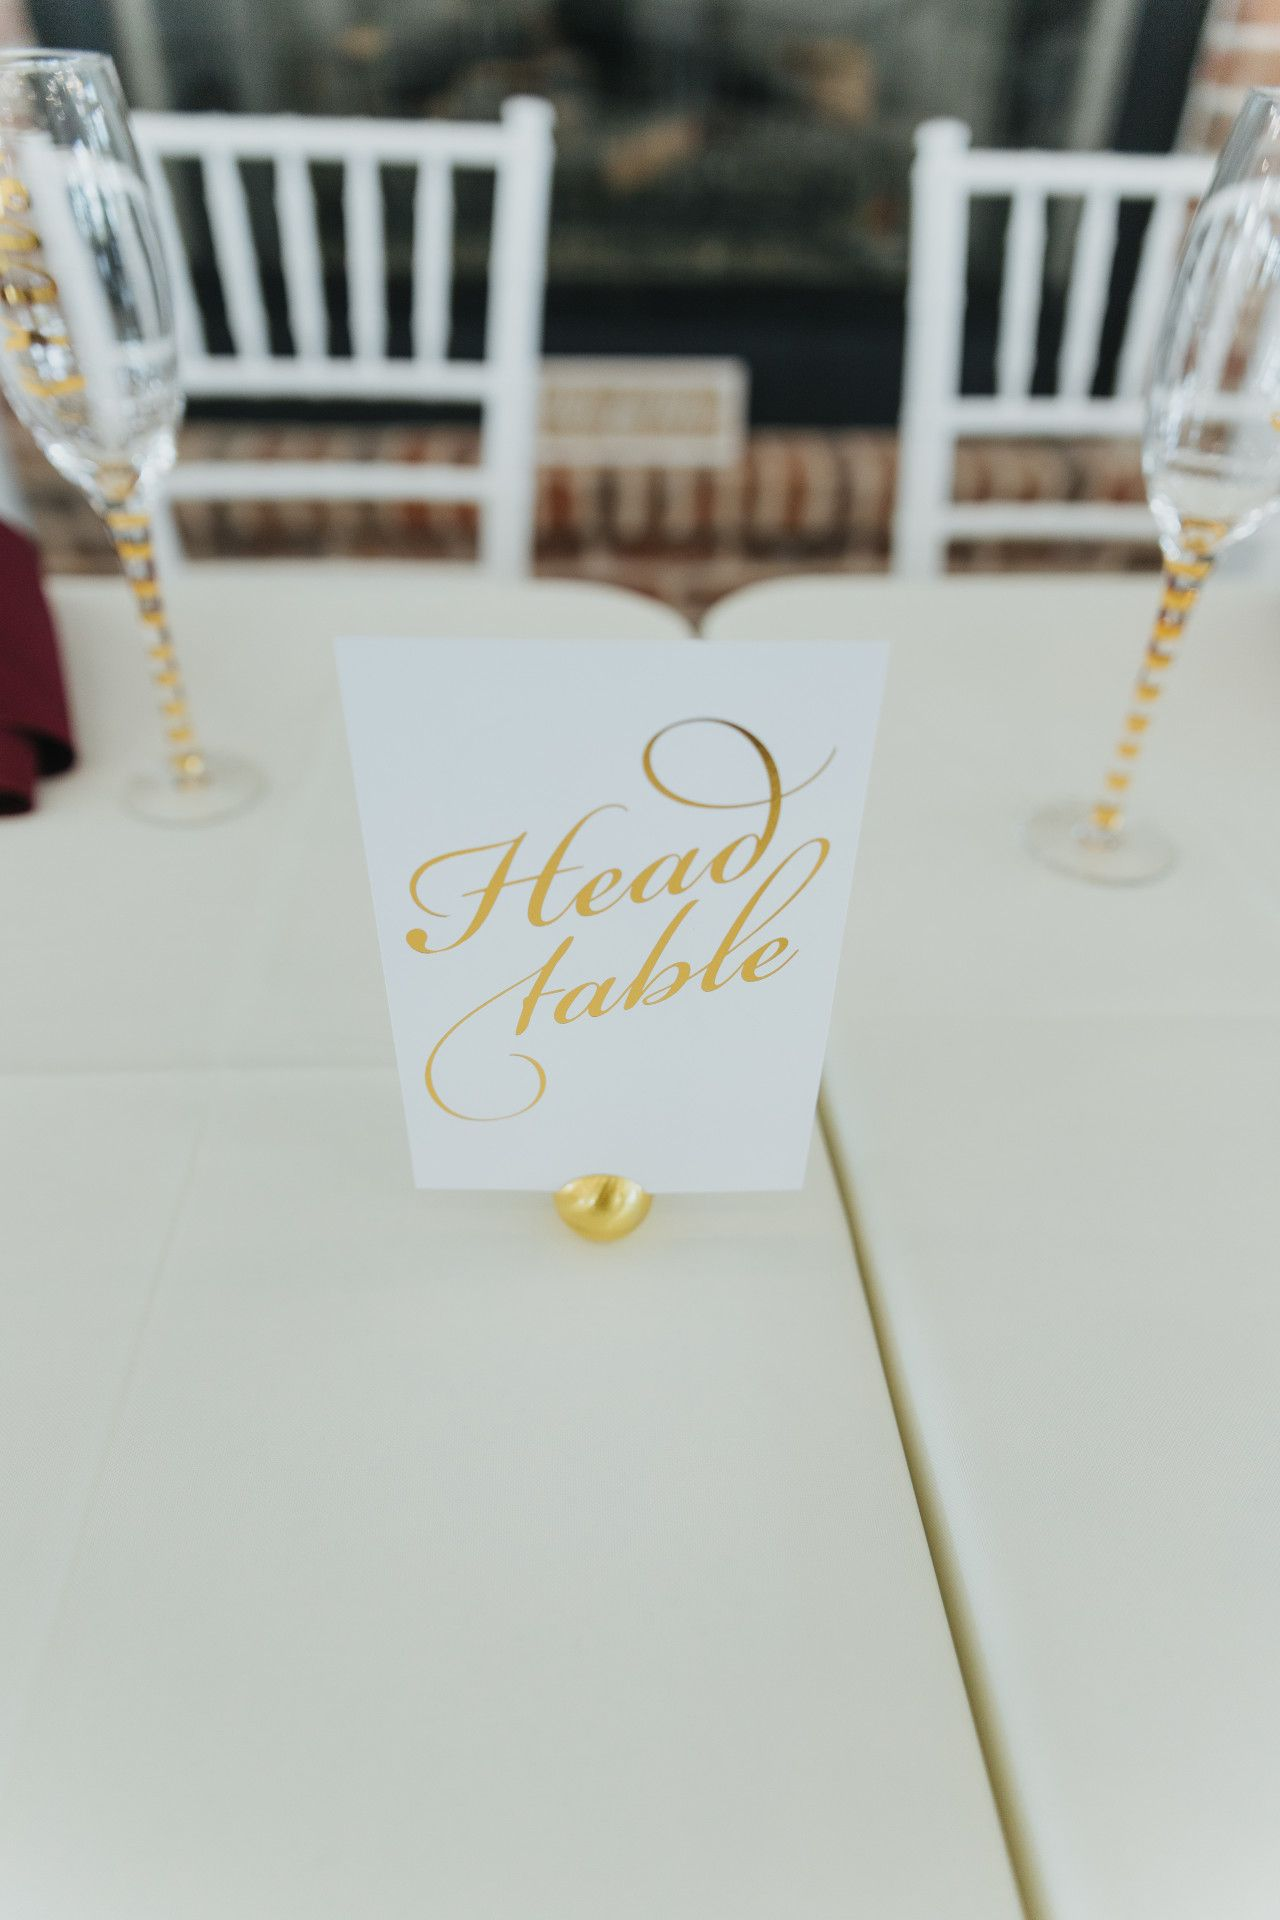 Simple wedding decoration ideas for reception  gold  white head table sign  elegant  simple wedding reception